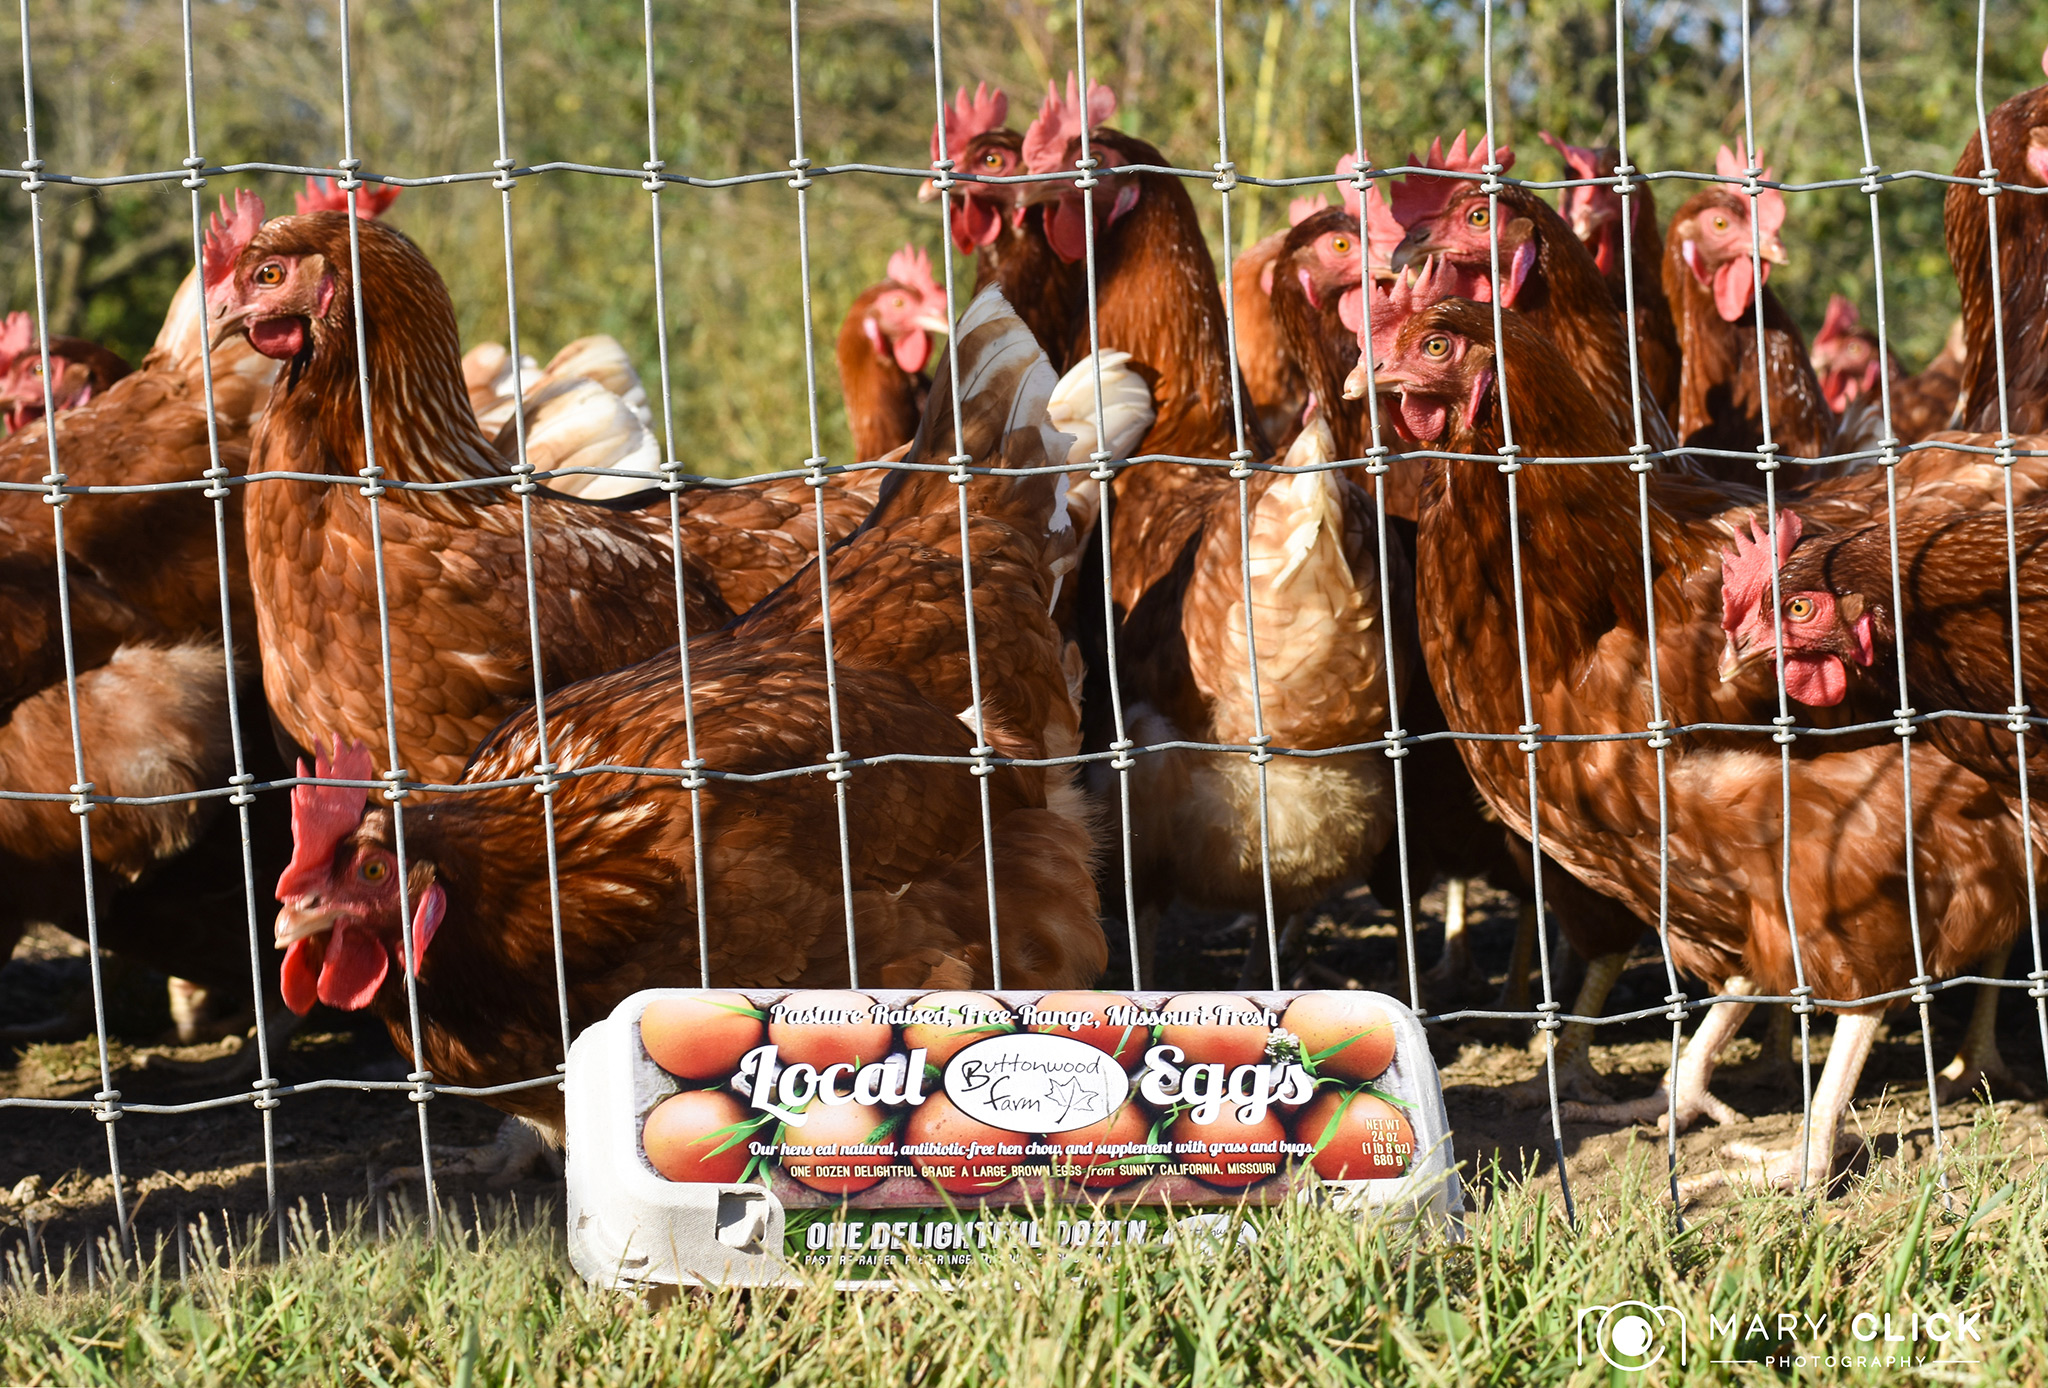 Buttonwood Farm Chickens & Eggs